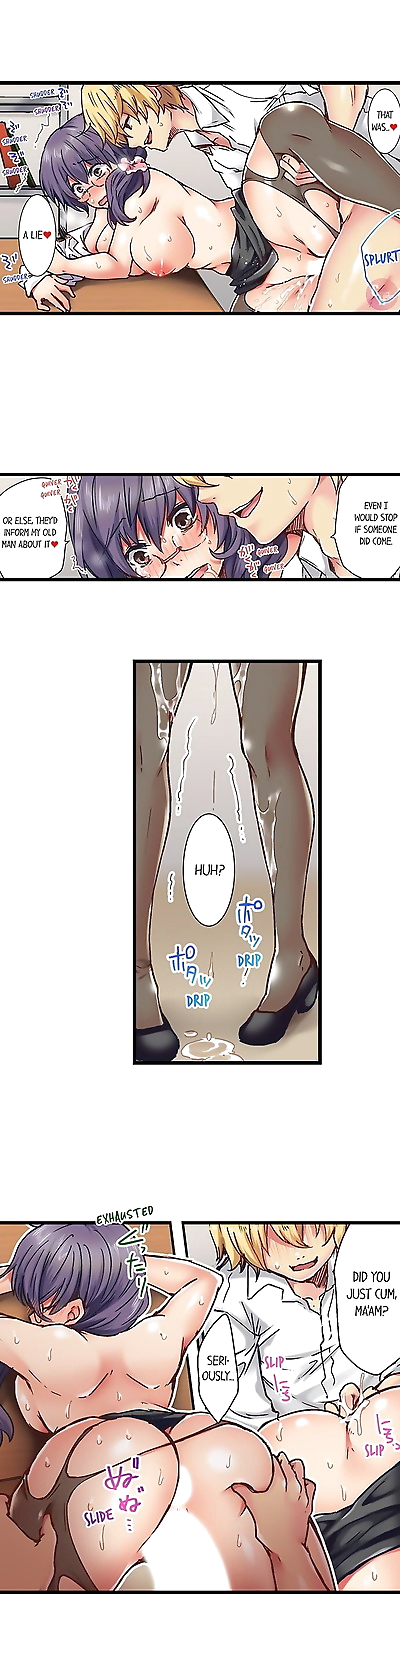 Shino Rewarding My Student with Sex Ch.6/? English Ongoing - part 3